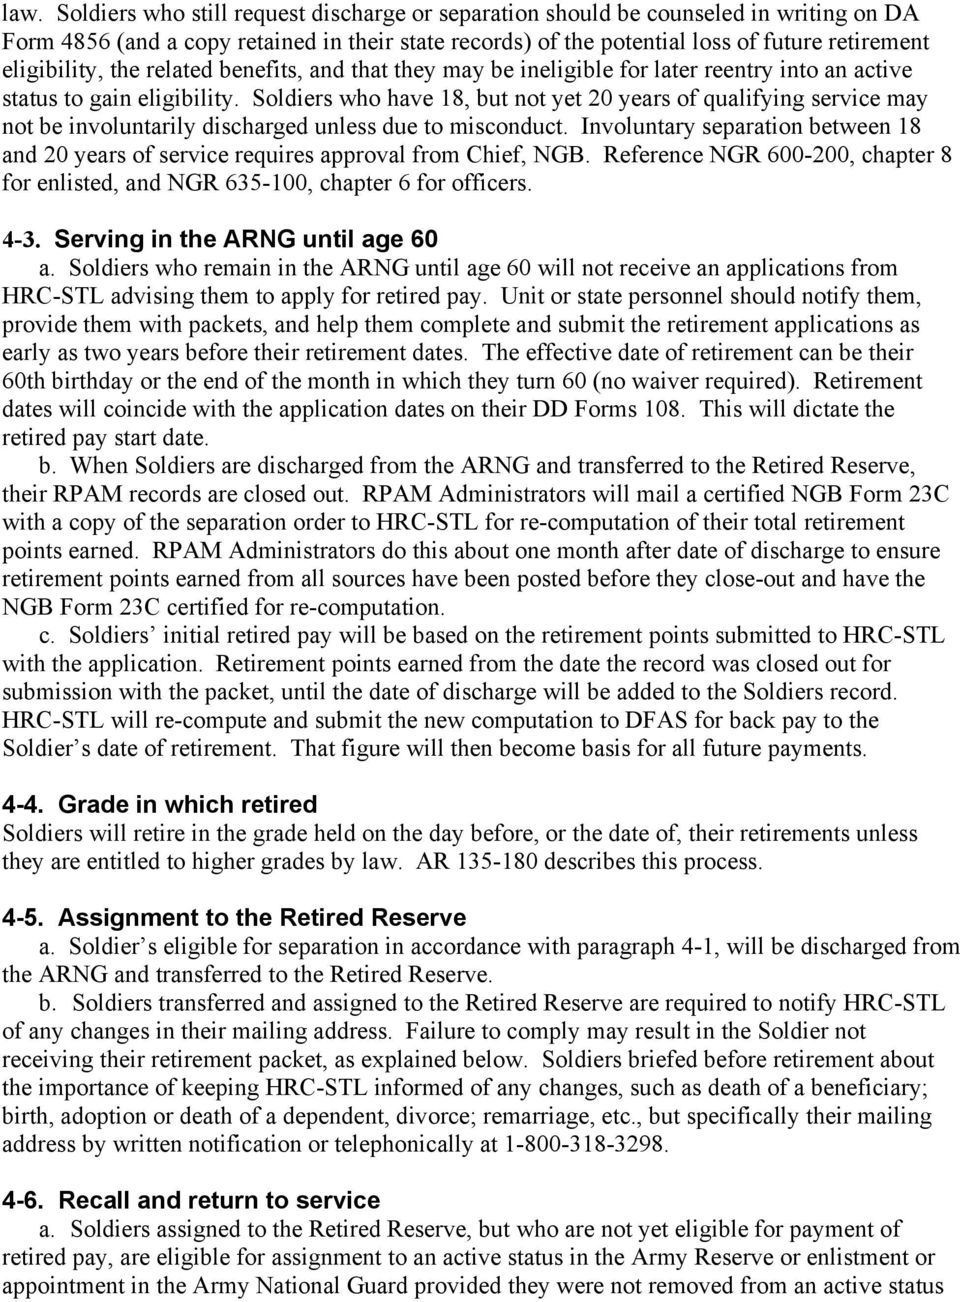 Army National Guard Information Guide On Non-Regular Retirement - PDF